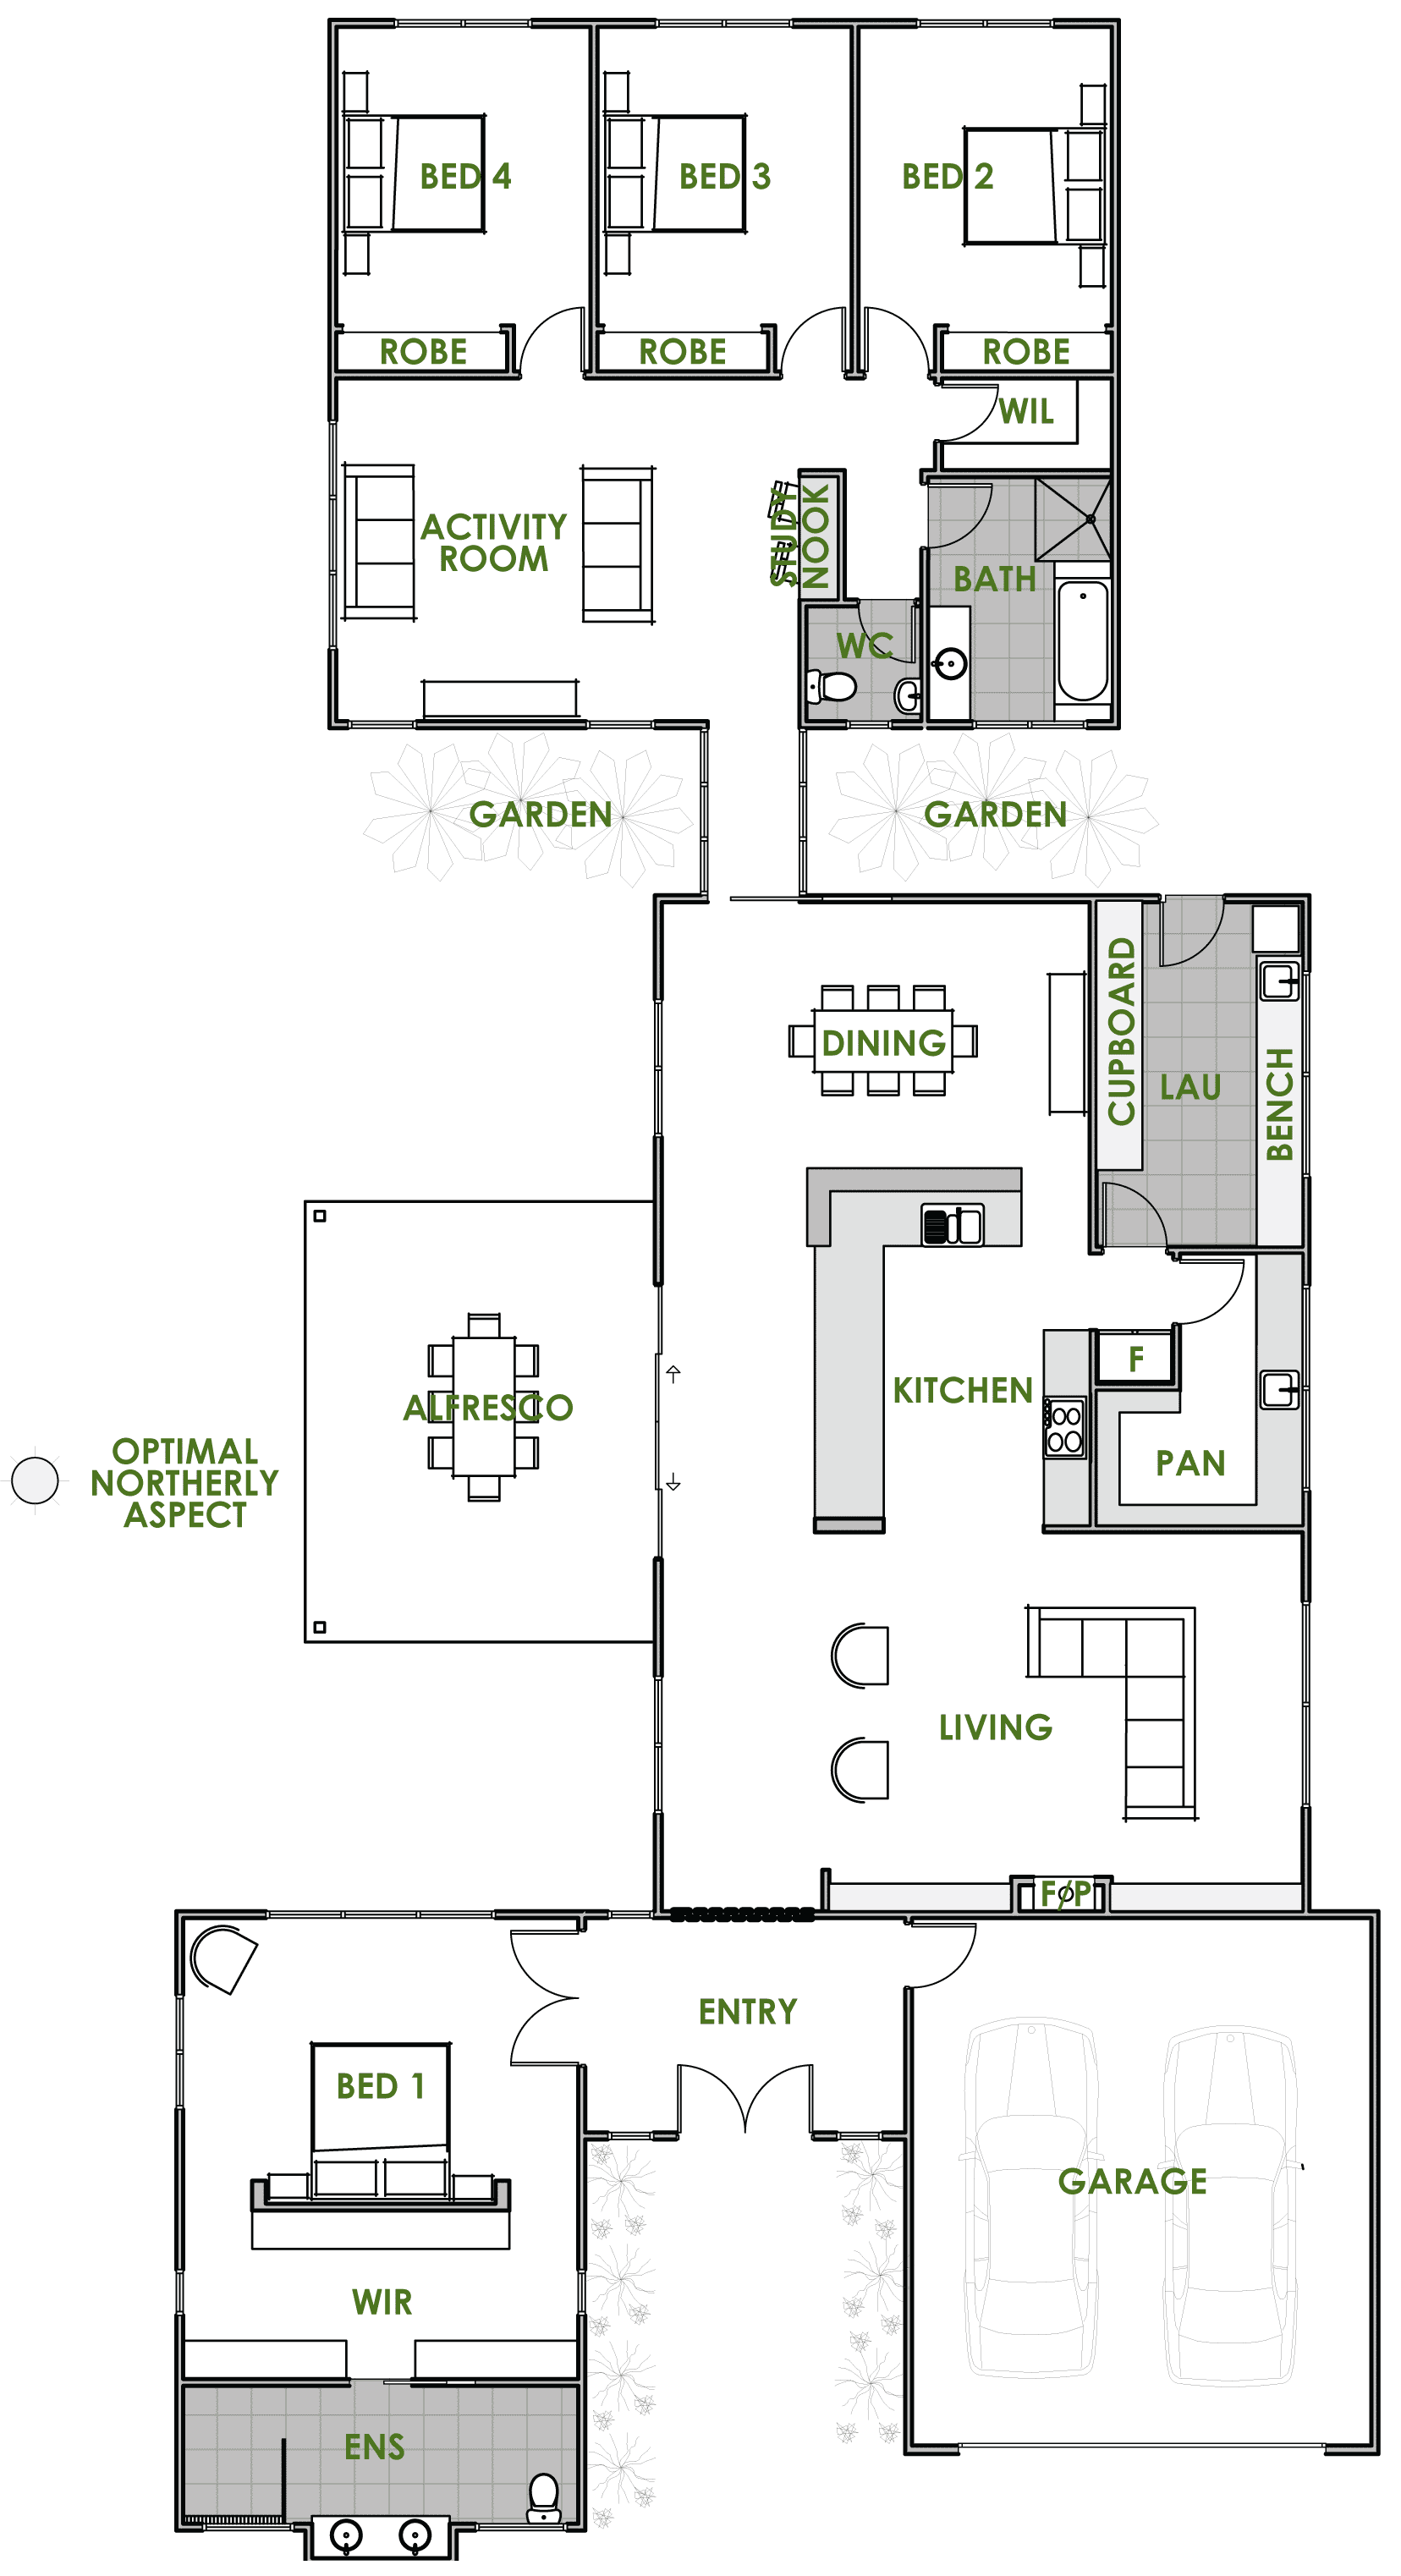 Floor Plan Friday Energy Efficient Home further A Frame House Plan 36 Feet High as well Tiny House Free Floor Plans Nice Idea To Build Our Home Good Design And Amazing likewise Small additionally Subterranean. on diy plans 2 bedroom tiny house